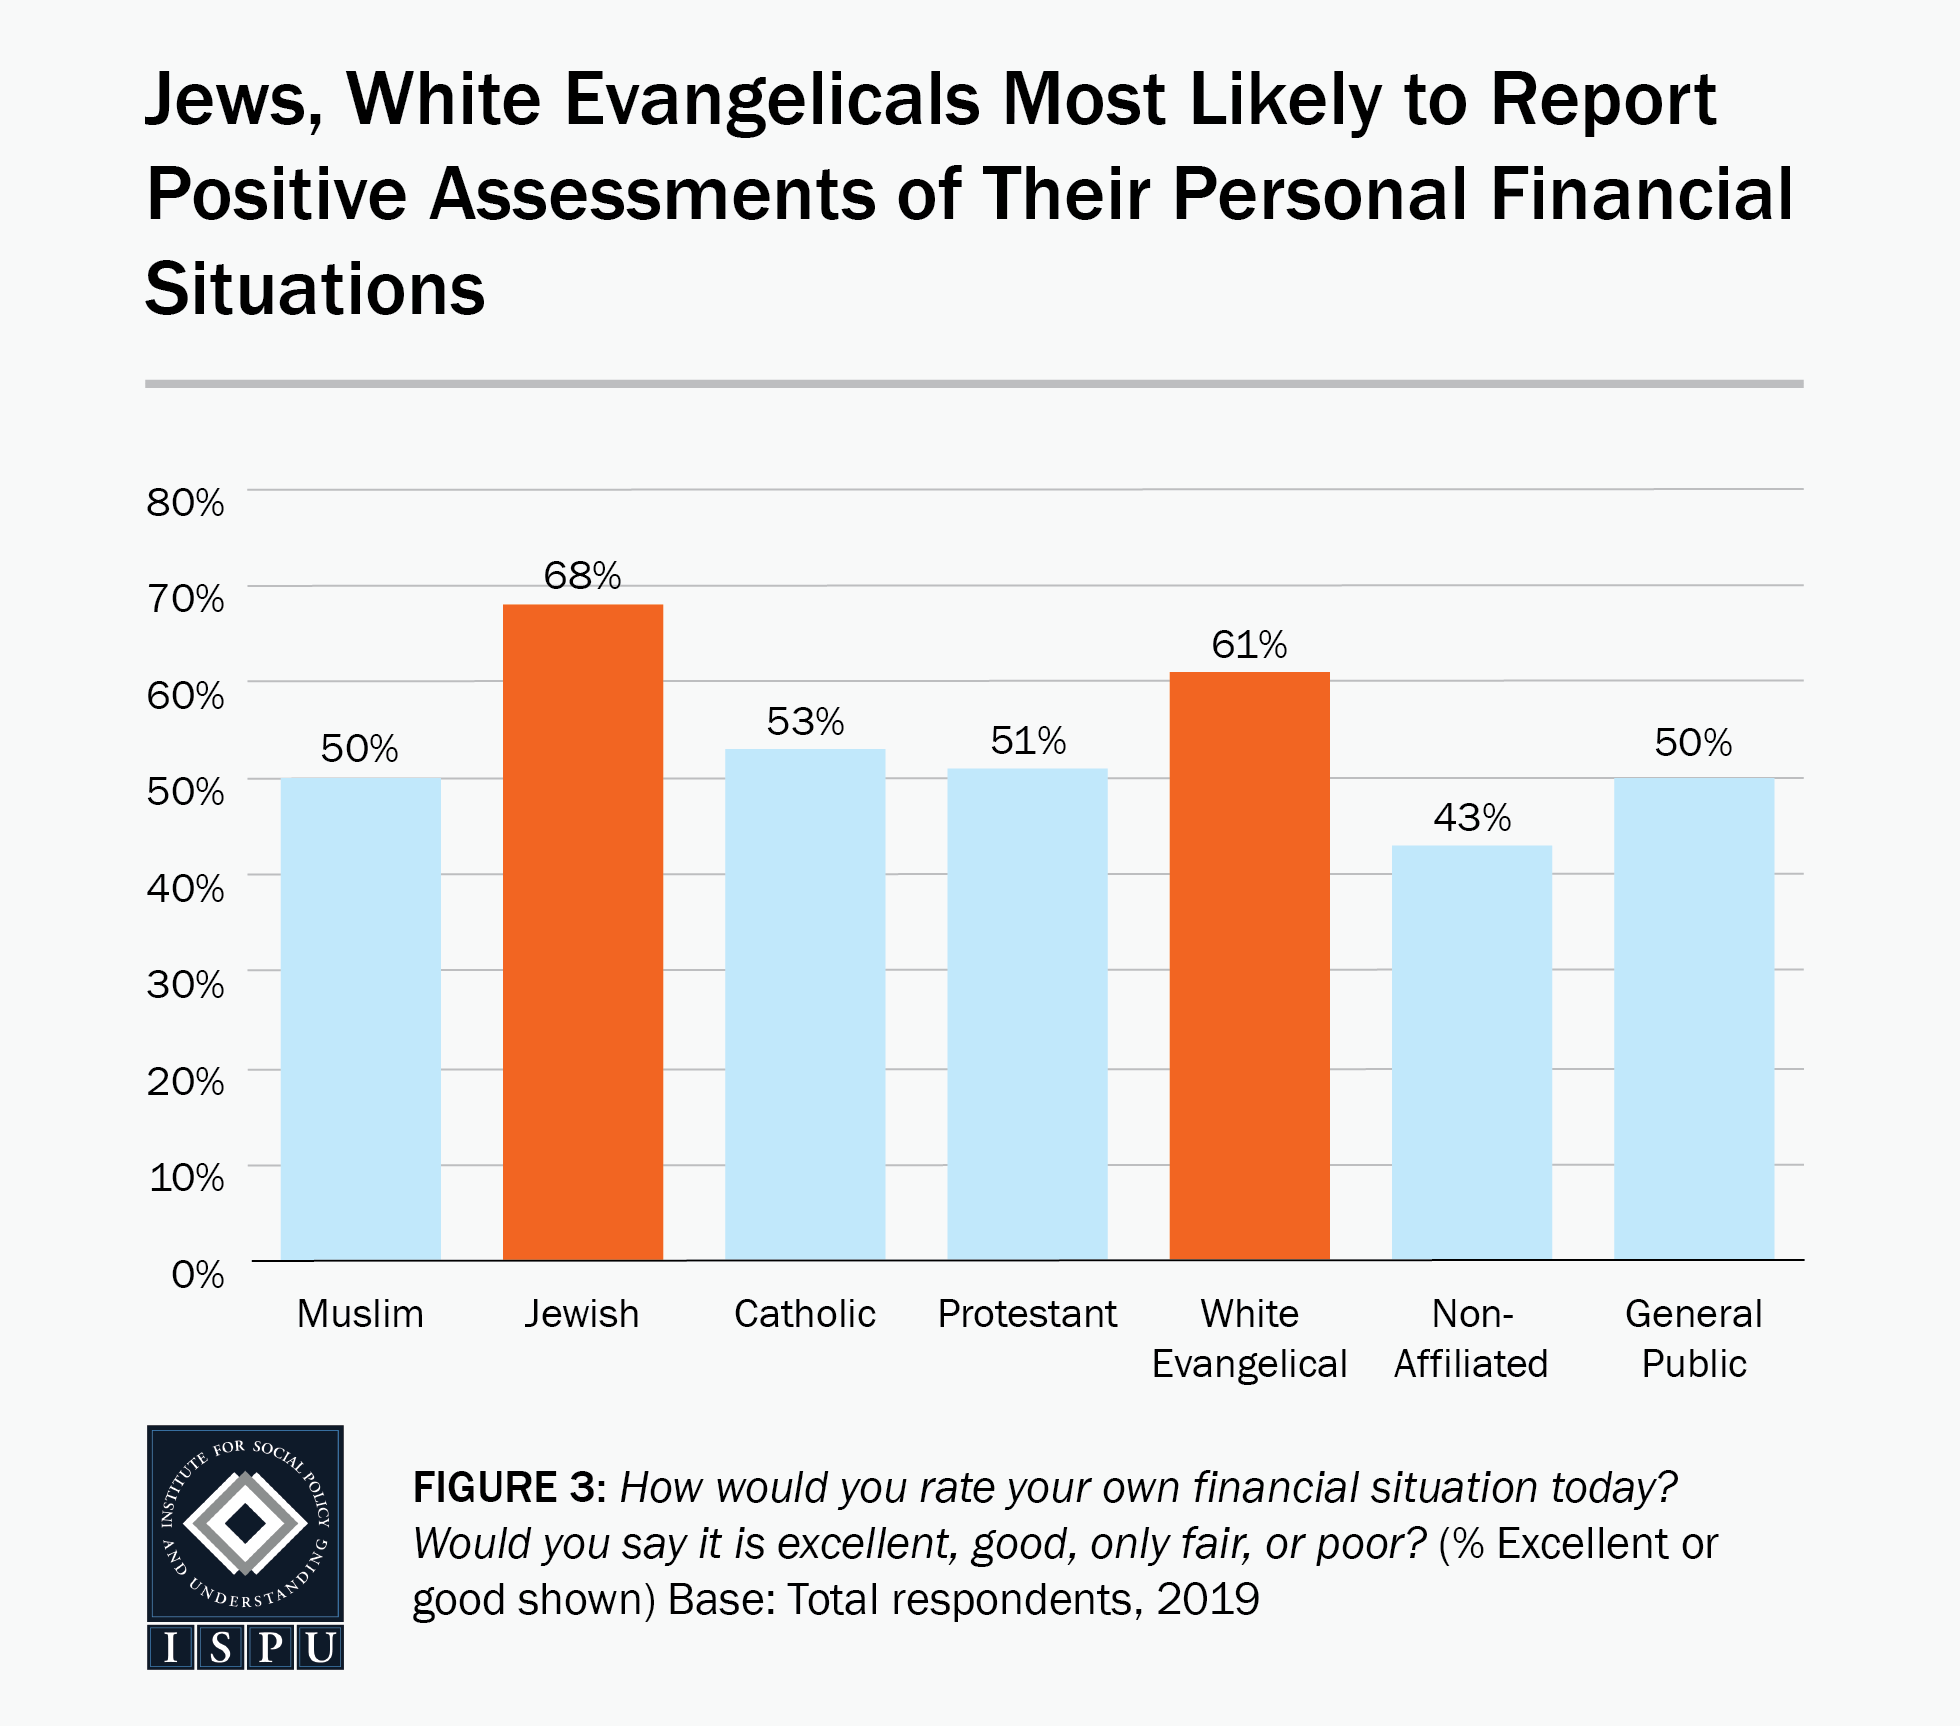 Figure 3: A bar graph showing that Jews and white Evangelicals are the most likely to report positive assessments of their personal financial situations